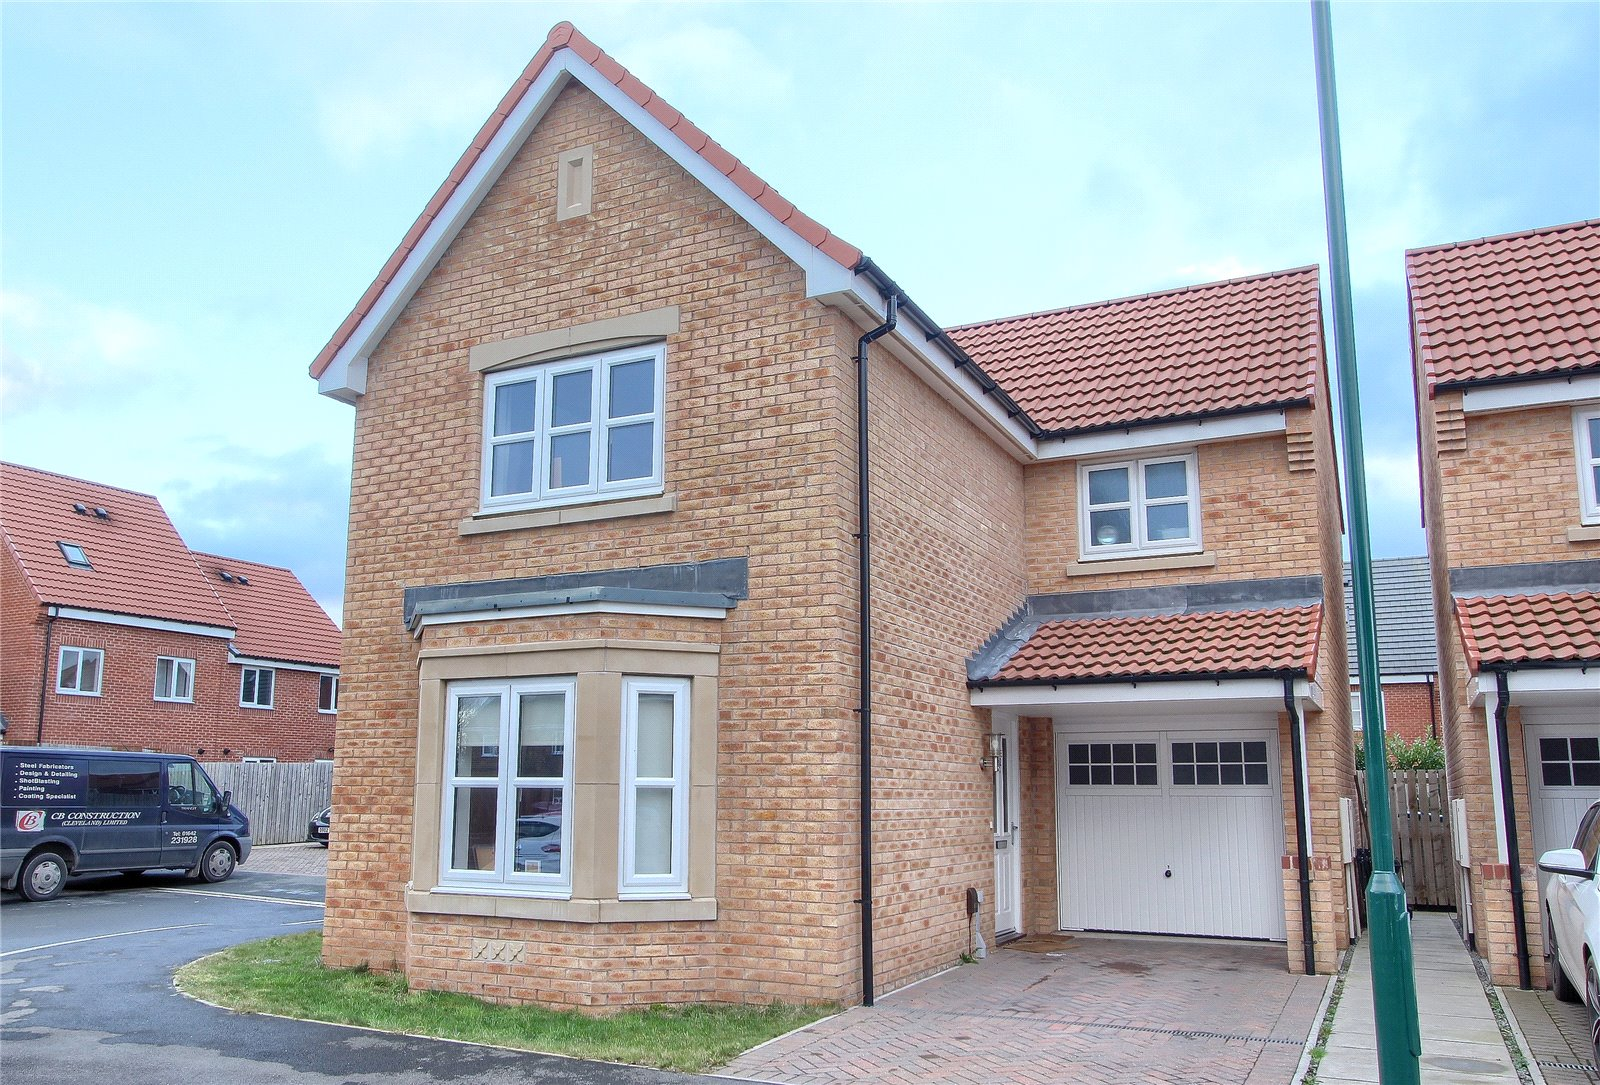 3 bed house for sale in College Gardens, Redcar  - Property Image 1